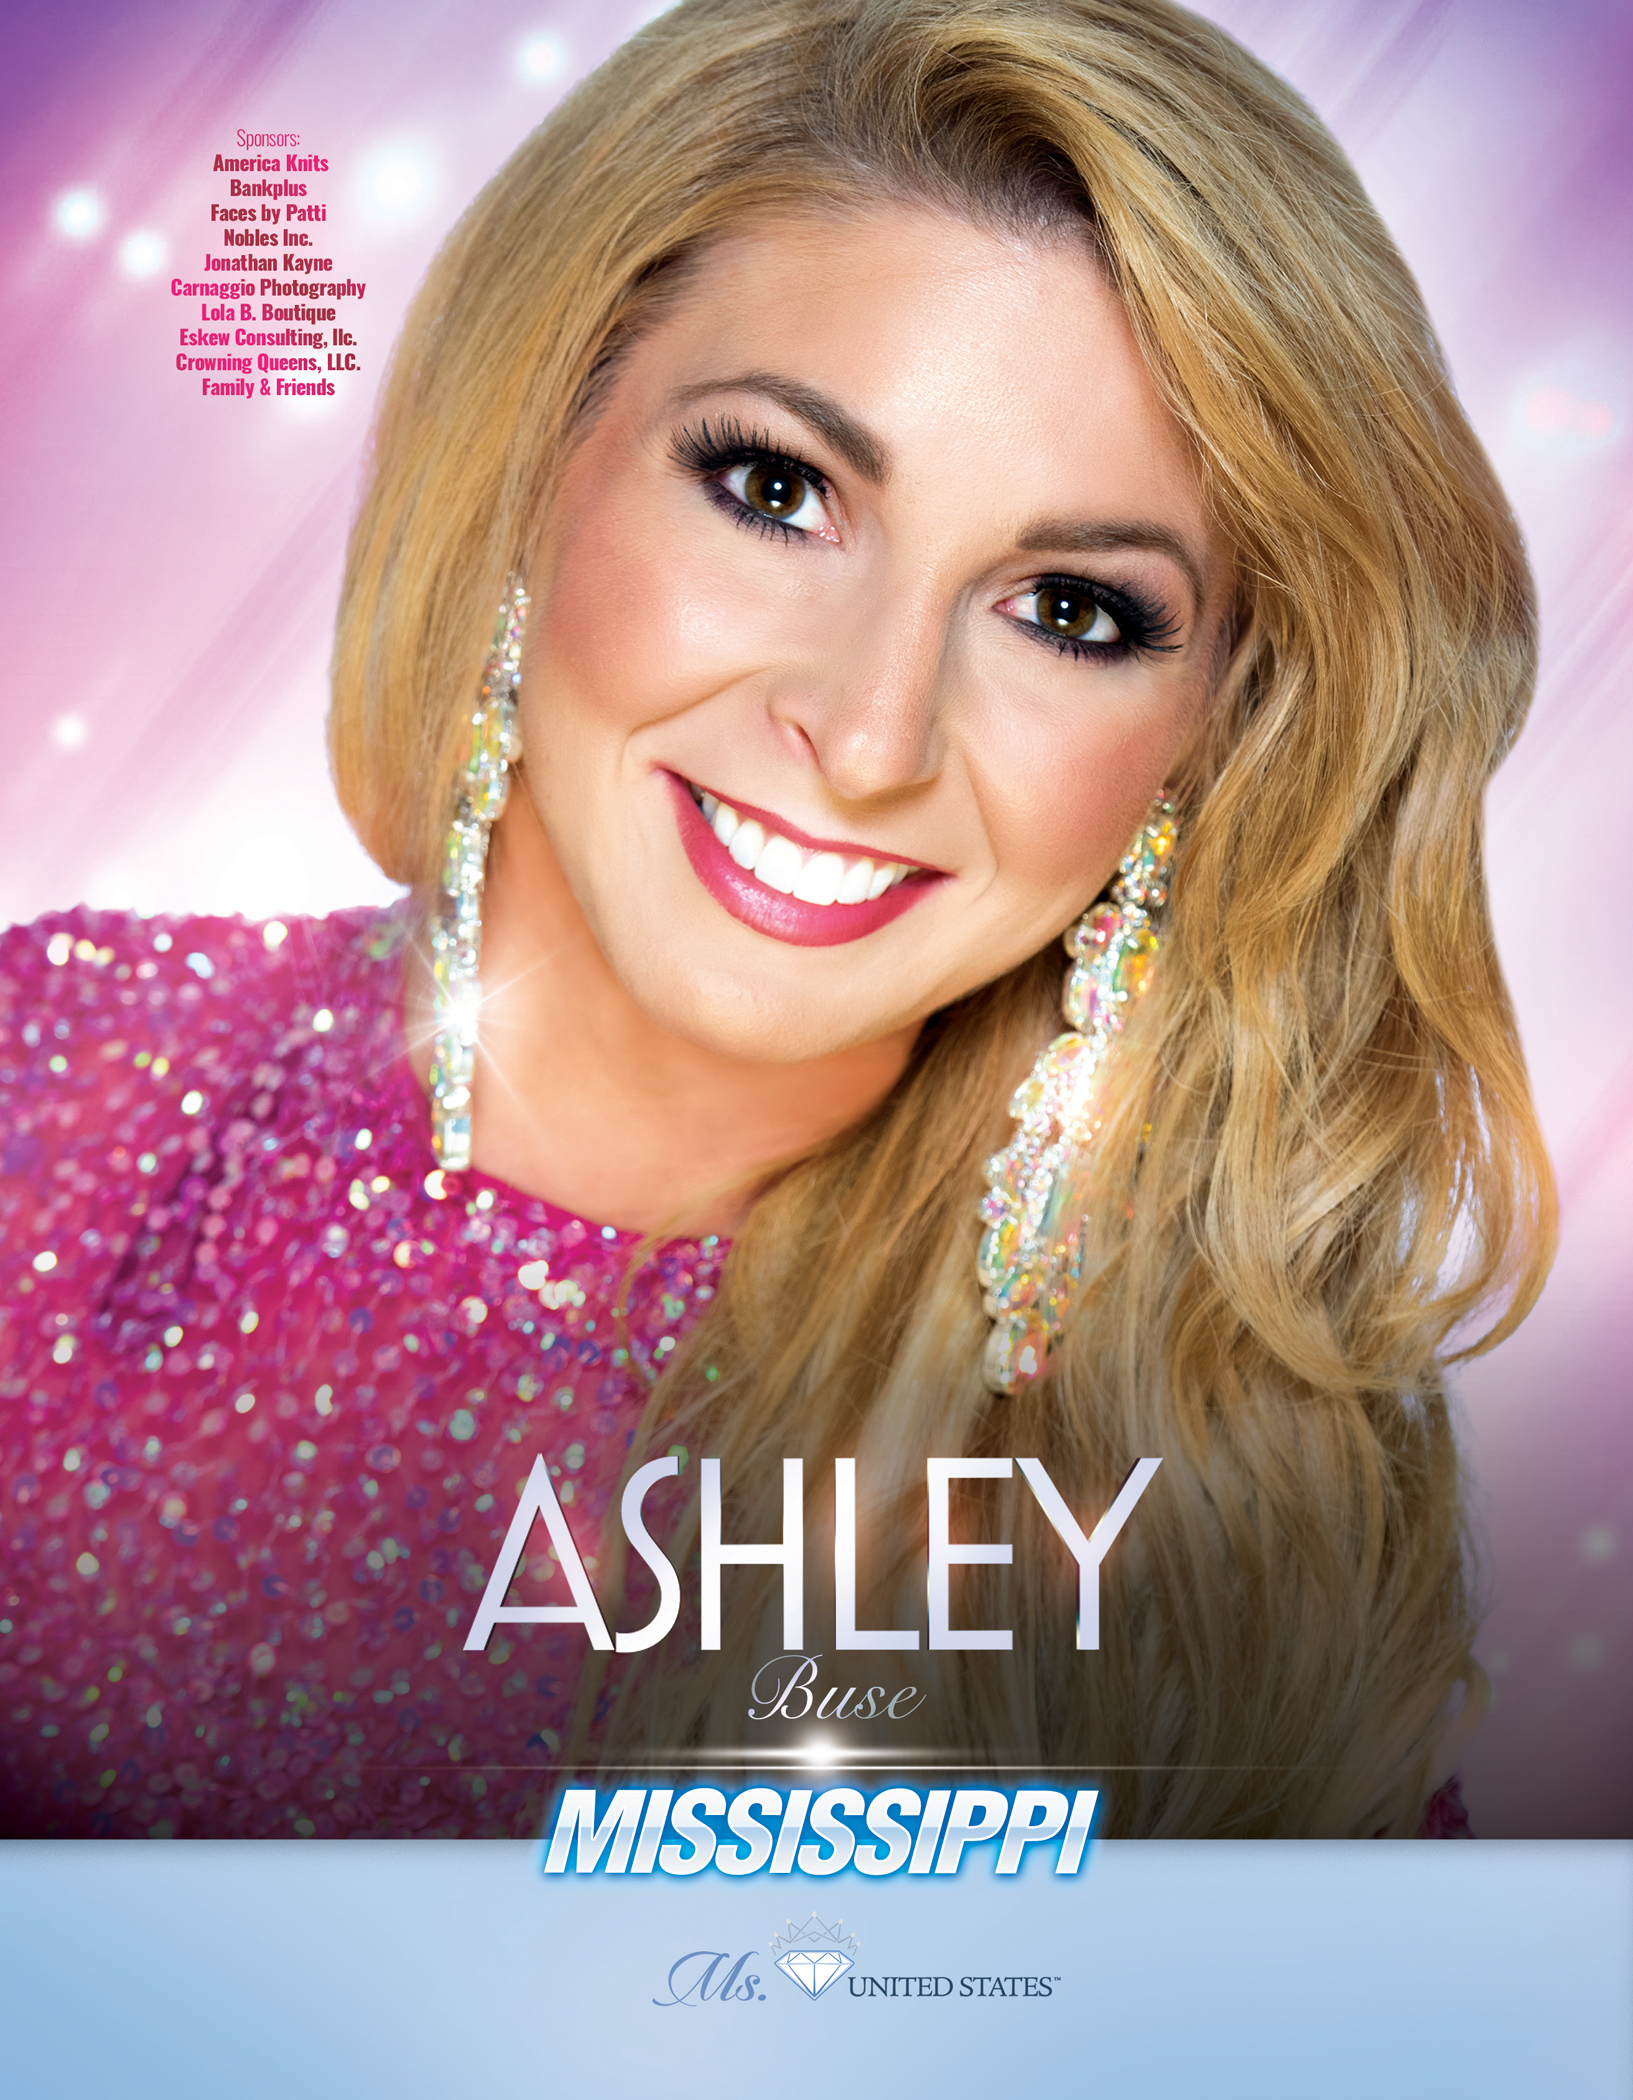 Ashley Buse Ms. Mississippi United States - 2019